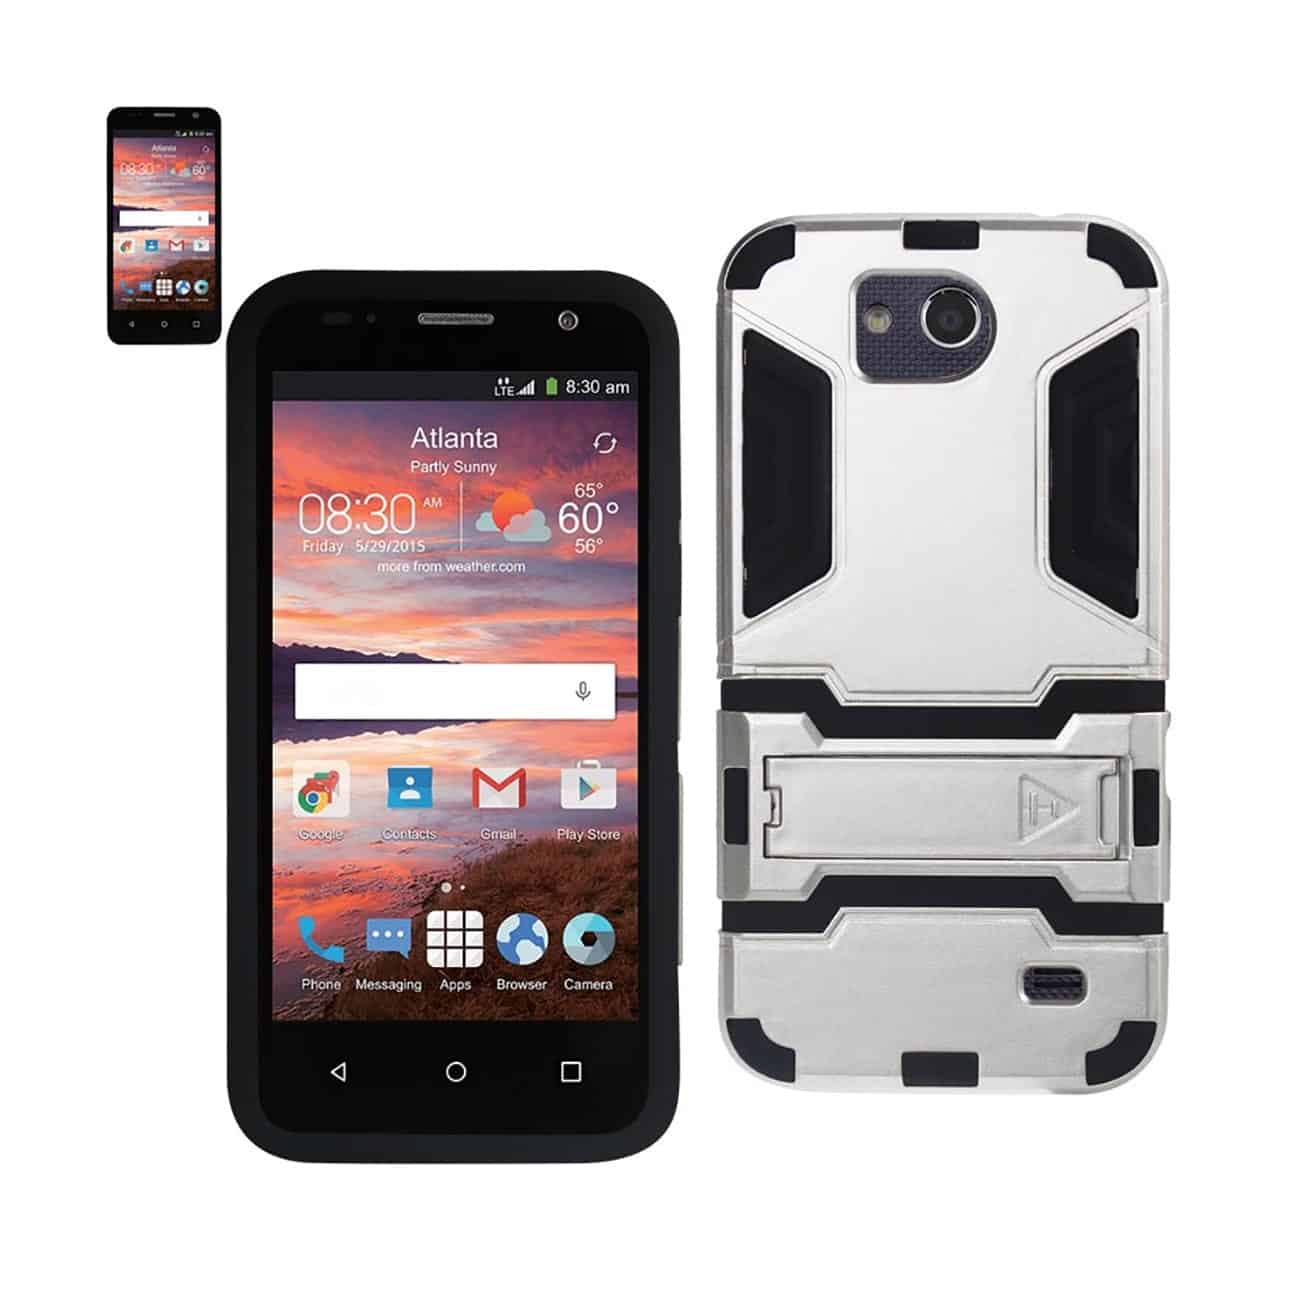 ZTE OVERTURE 2 HYBRID METALLIC CASE WITH KICKSTAND IN BLACK SILVER